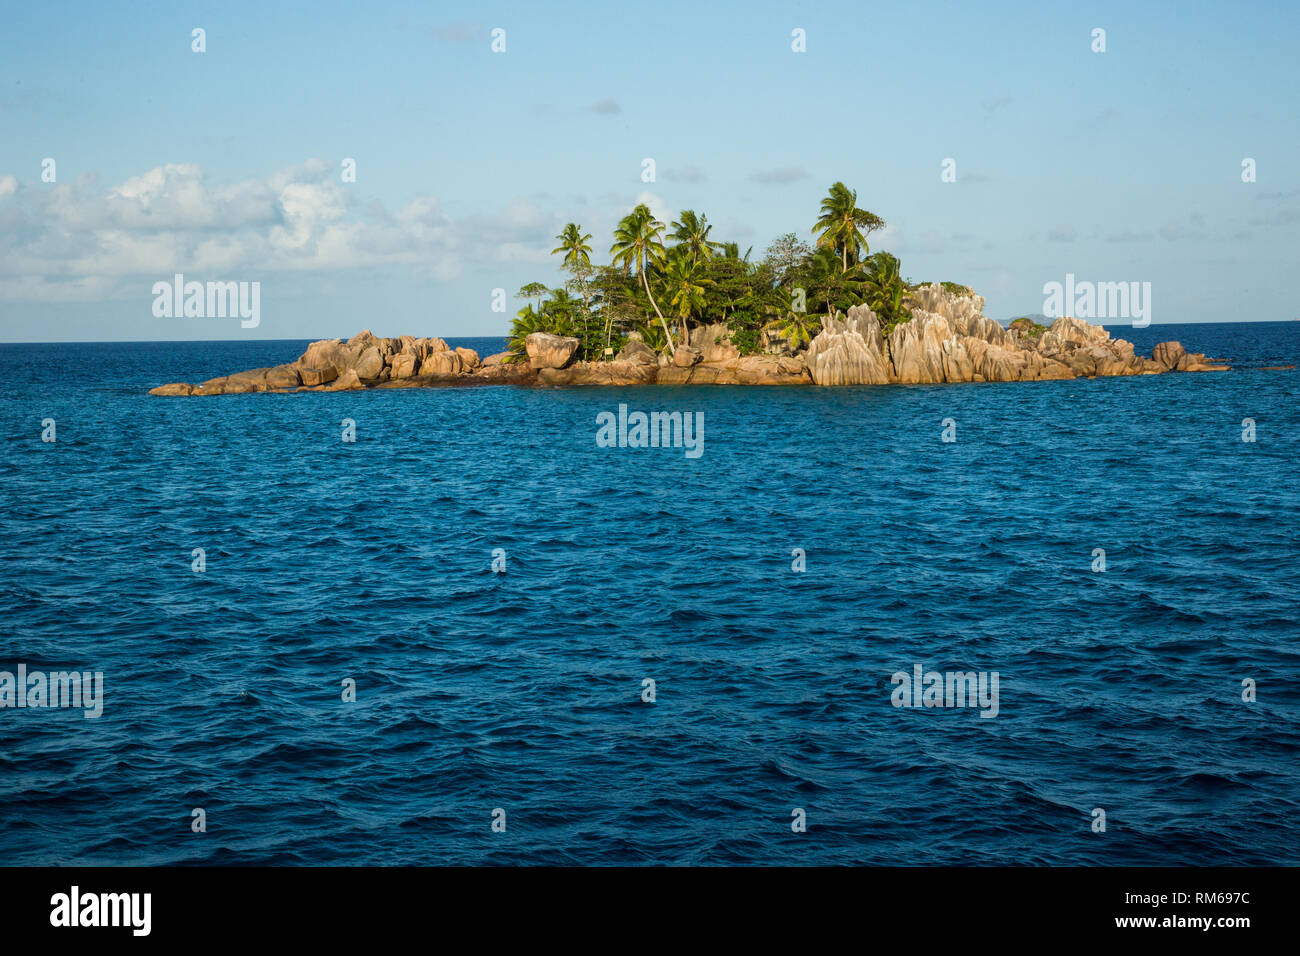 St. Pierre Island is a raised reef island west of Providence Atoll and part of Farquhar Group, which belongs to the Outer Islands of the Seychelles - Stock Image